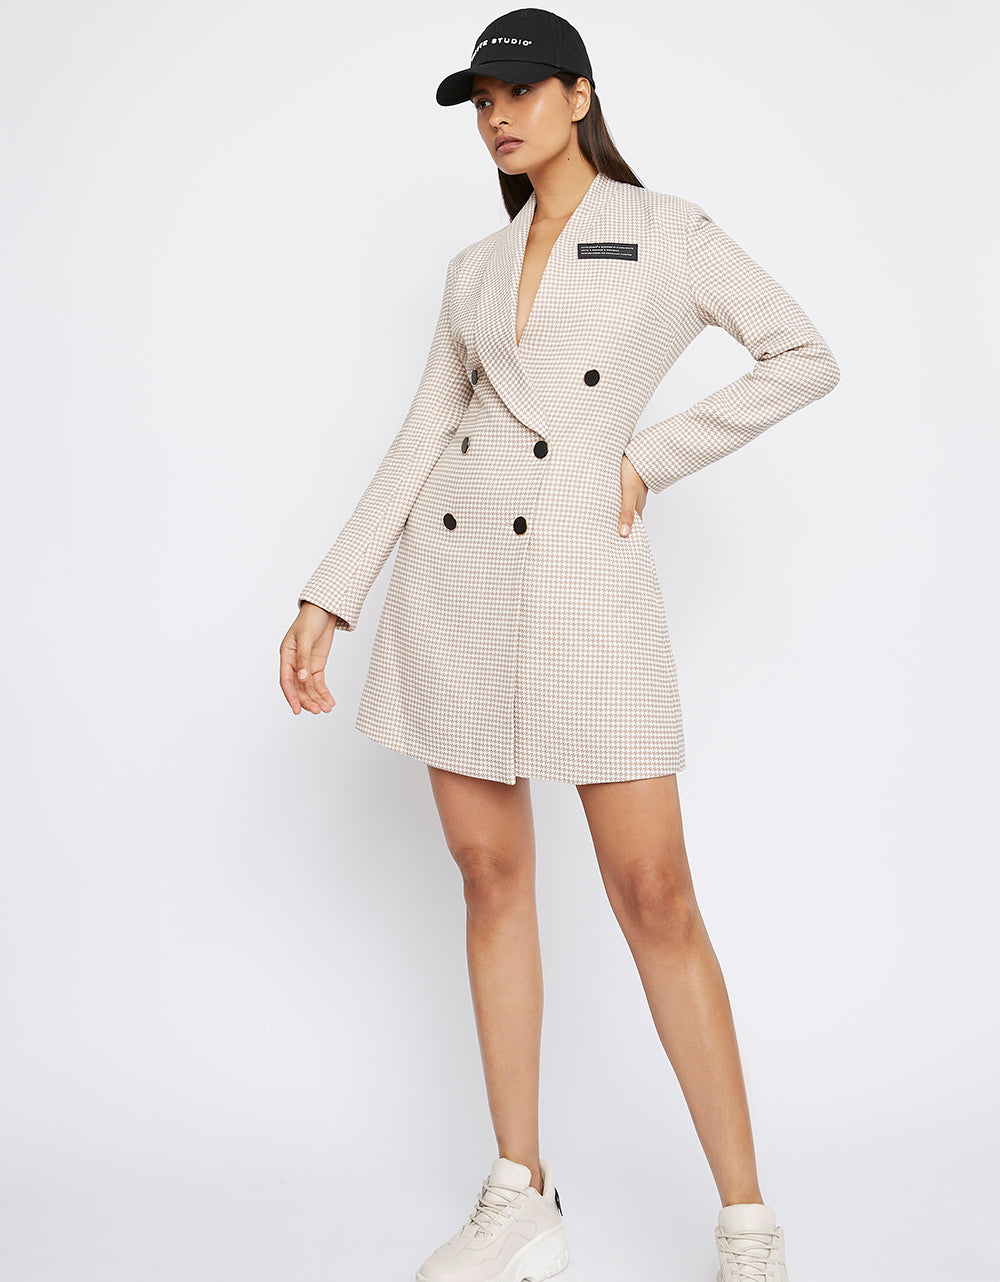 The 'DEACTIVATE' Houndstooth Blazer Dress